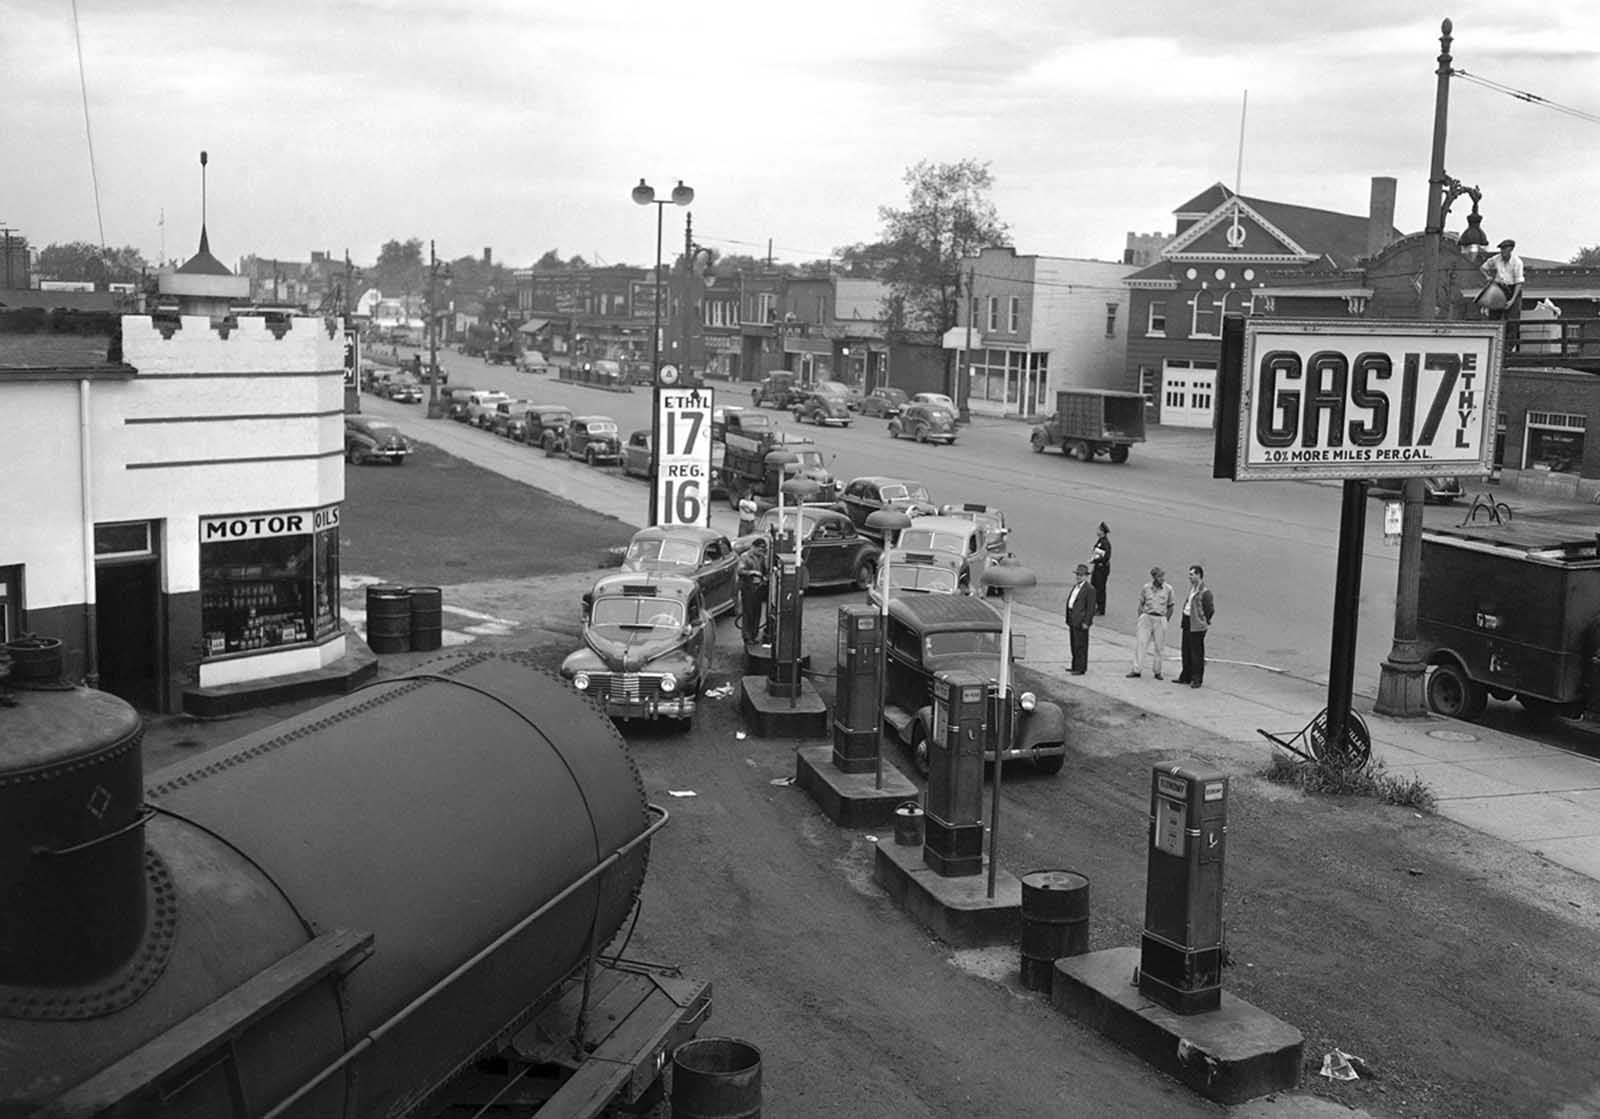 Motorists line a street waiting to buy gasoline at 17 cents per gallon at this station in Detroit on September 24, 1945. Such stations were not affected by a strike of Yank-Wacon truck drivers and did big business as nearly all other stations, supplied by truck, were closed.